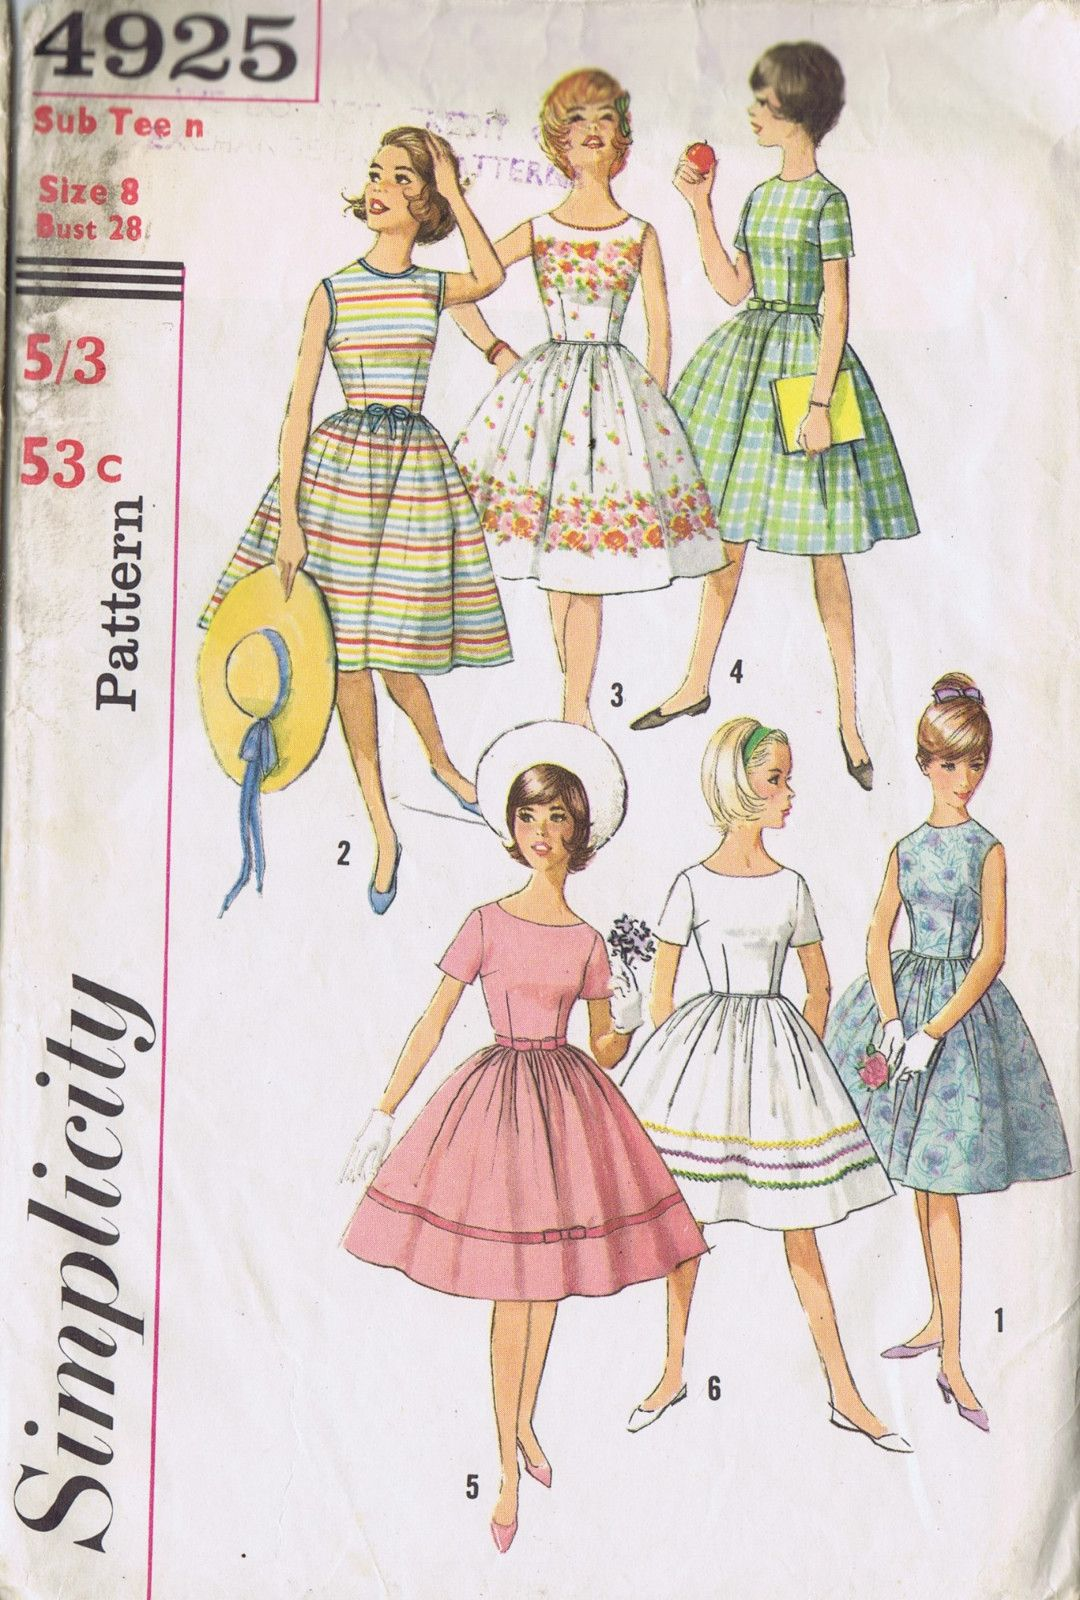 GIRLS PARTY DRESS SEWING 50s PATTERN SIMPLICITY 4925 SZ 8 BUST 28 ...